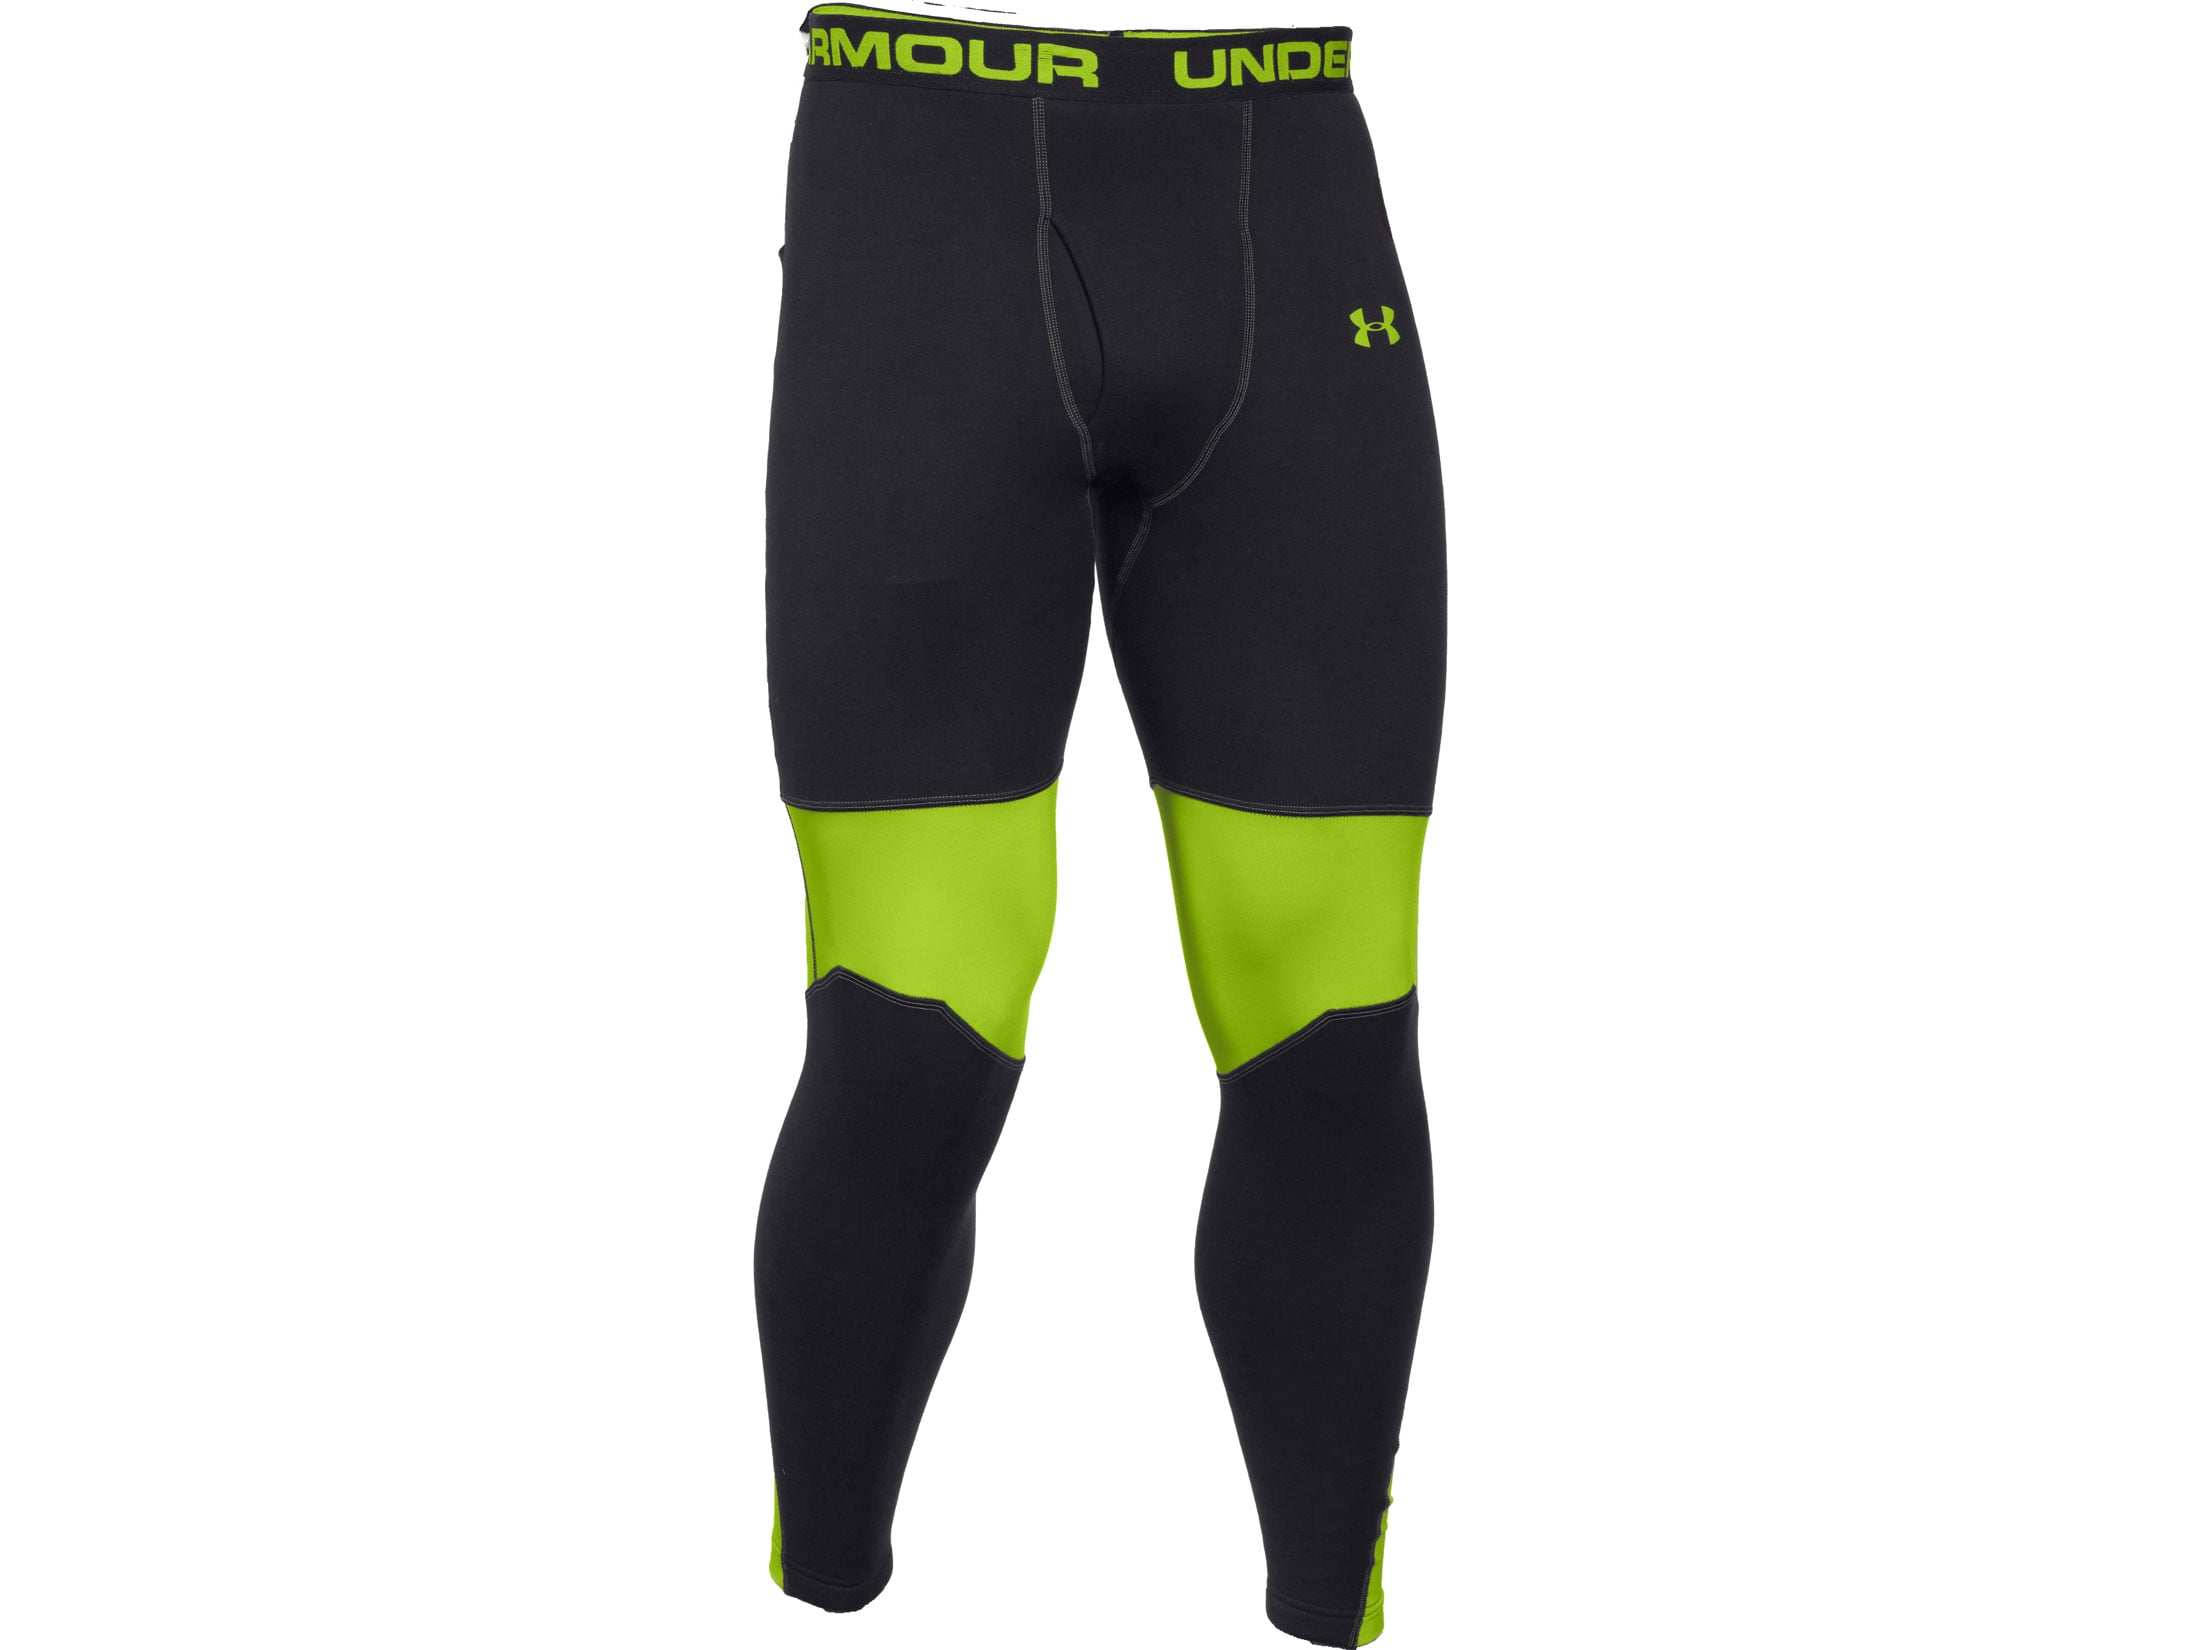 best sell how to serch fashionable patterns Under Armour Men's ColdGear Extreme Base Layer Pants Polyester Black